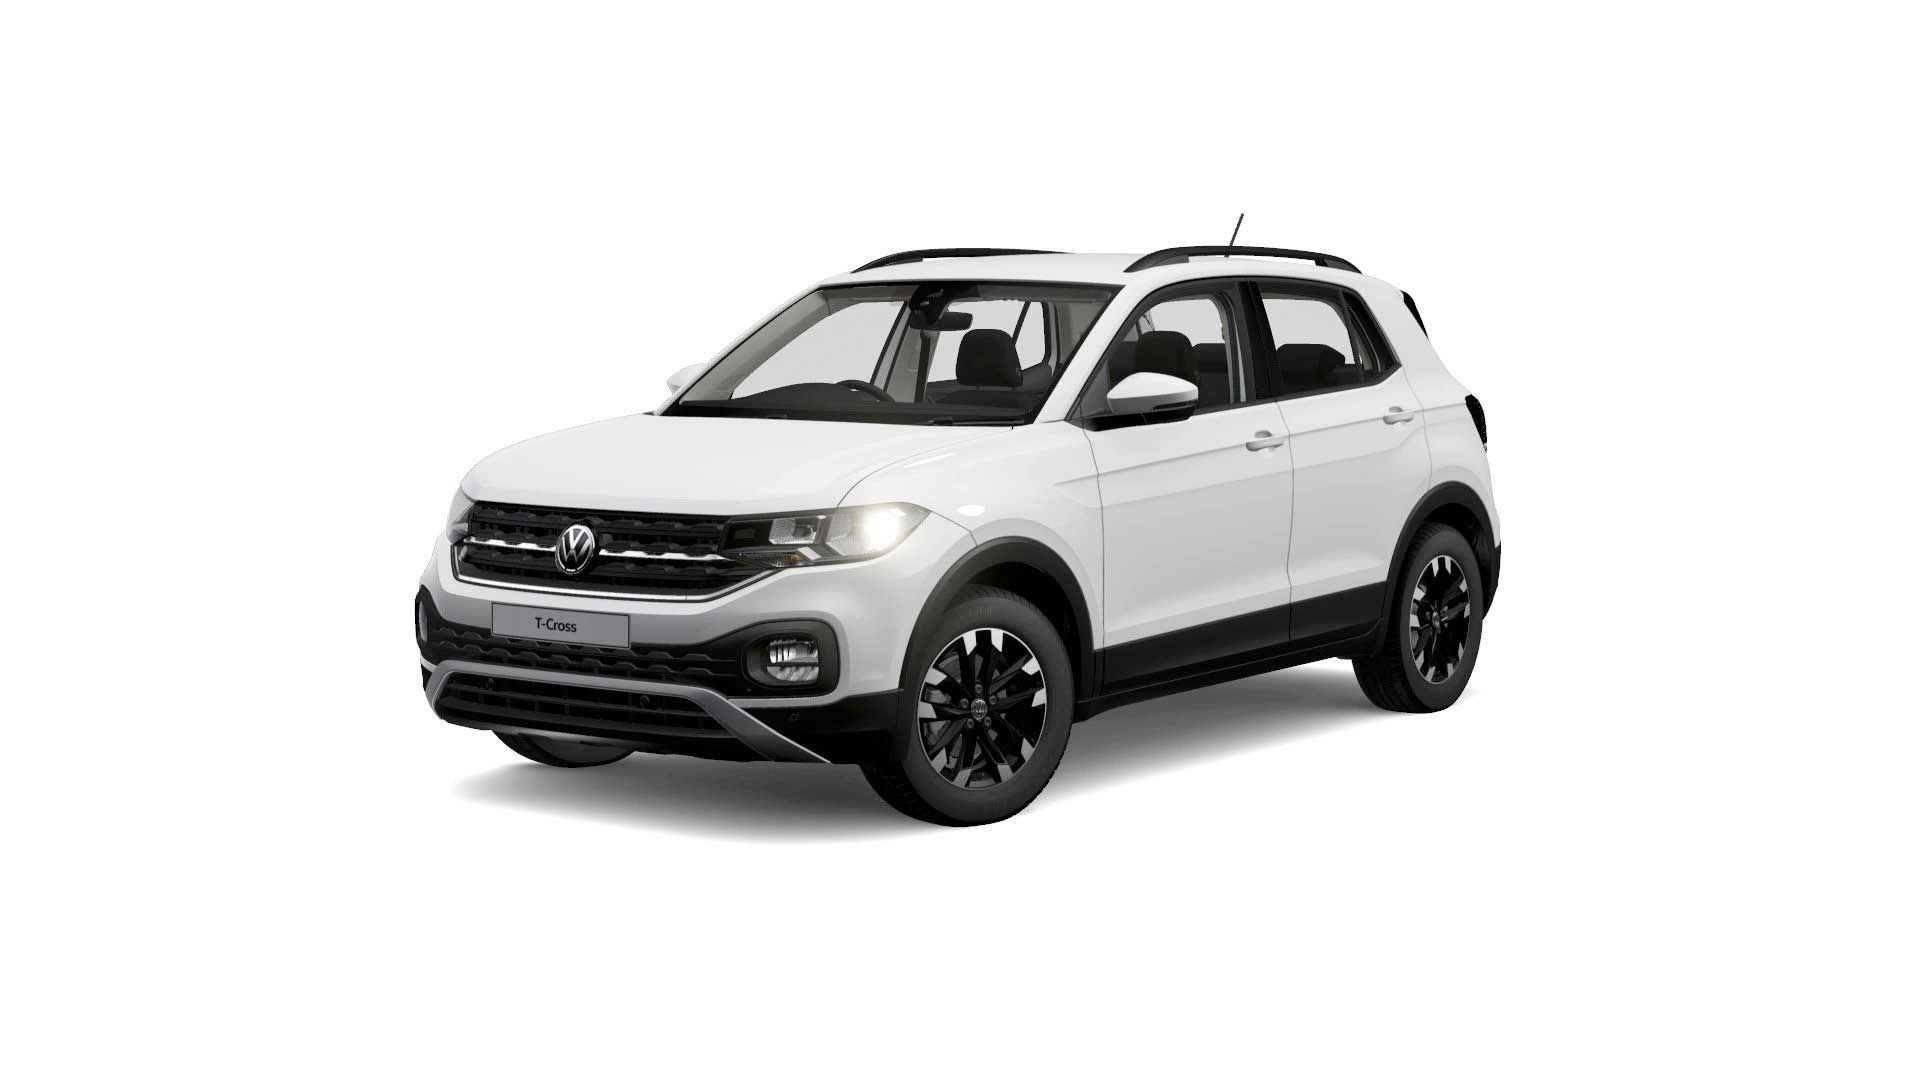 t-cross-front-view